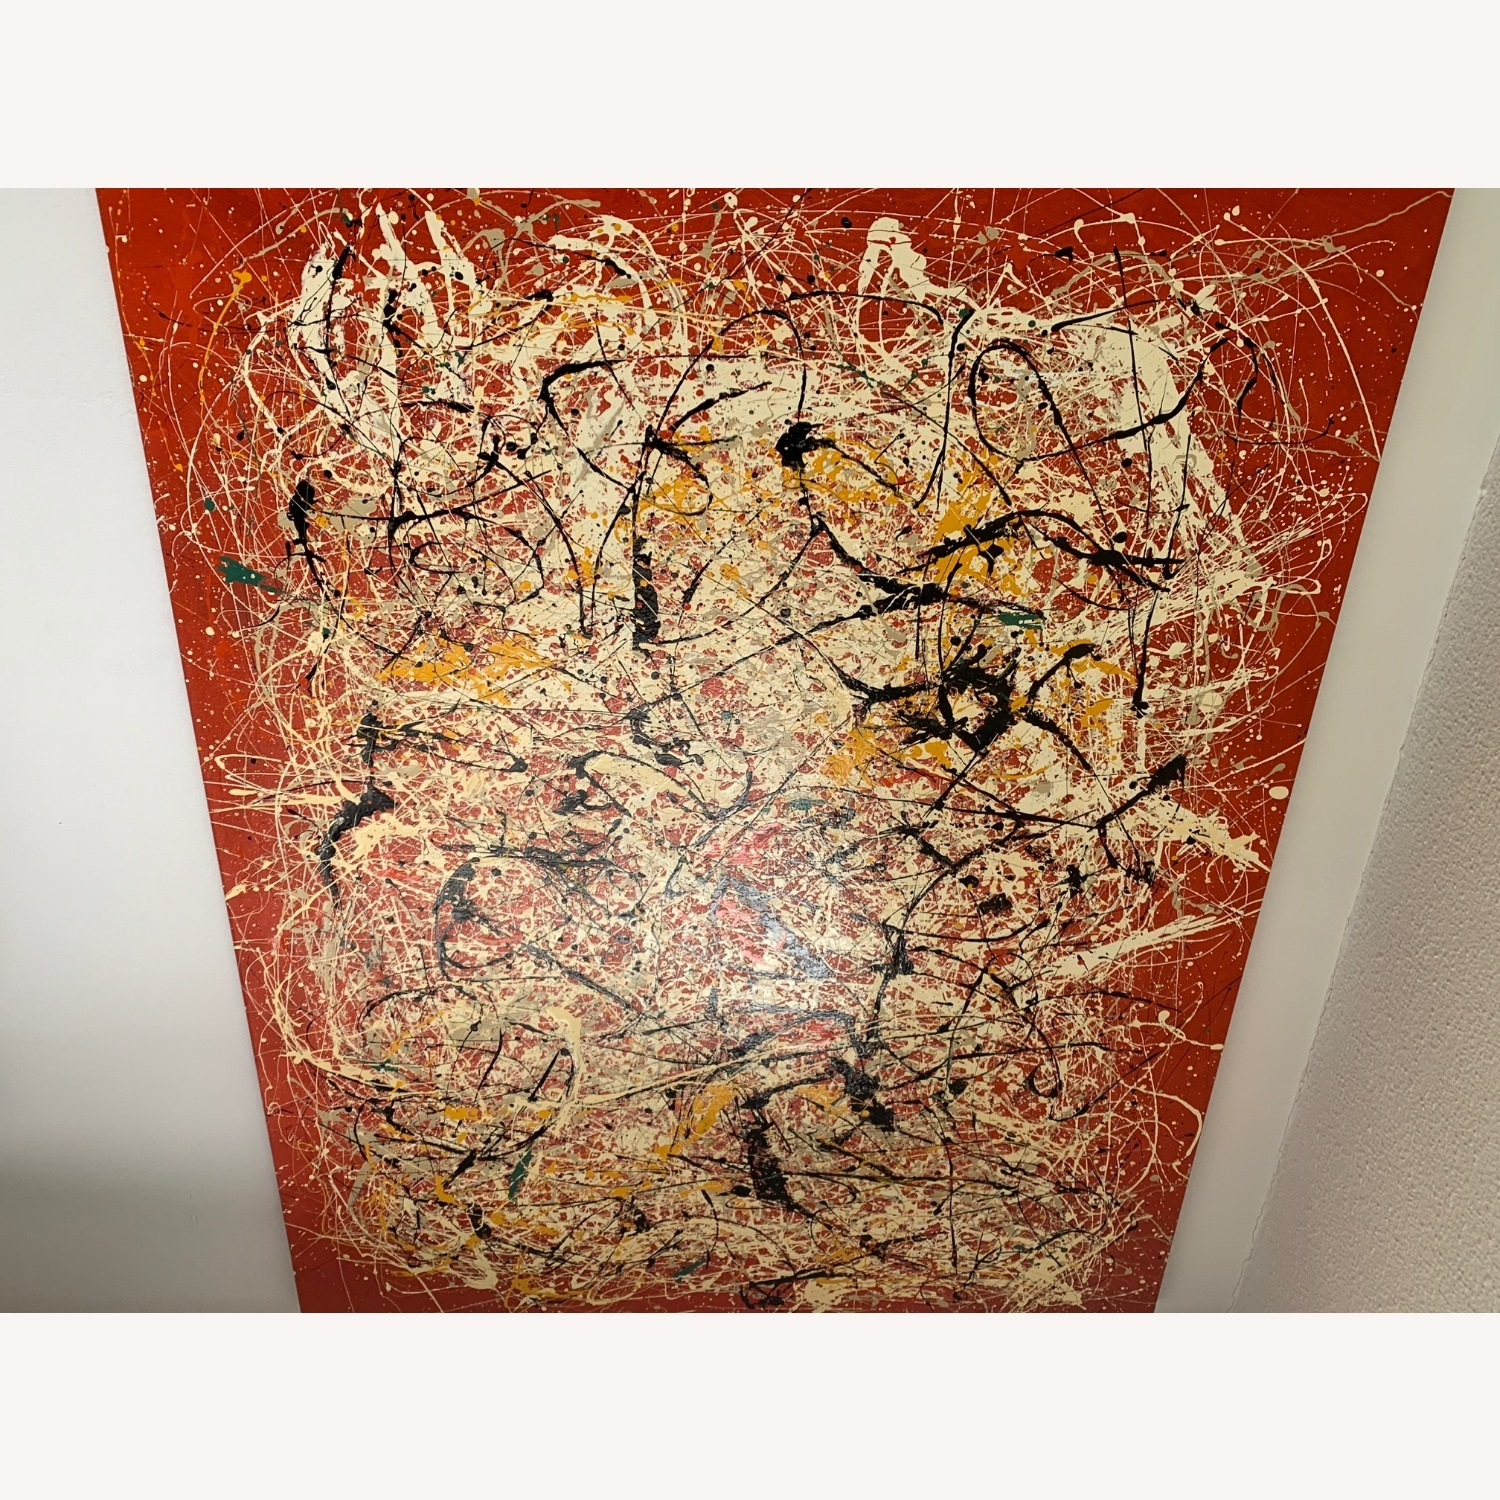 XL Painting- Jackson Pollock Reproduction - image-4